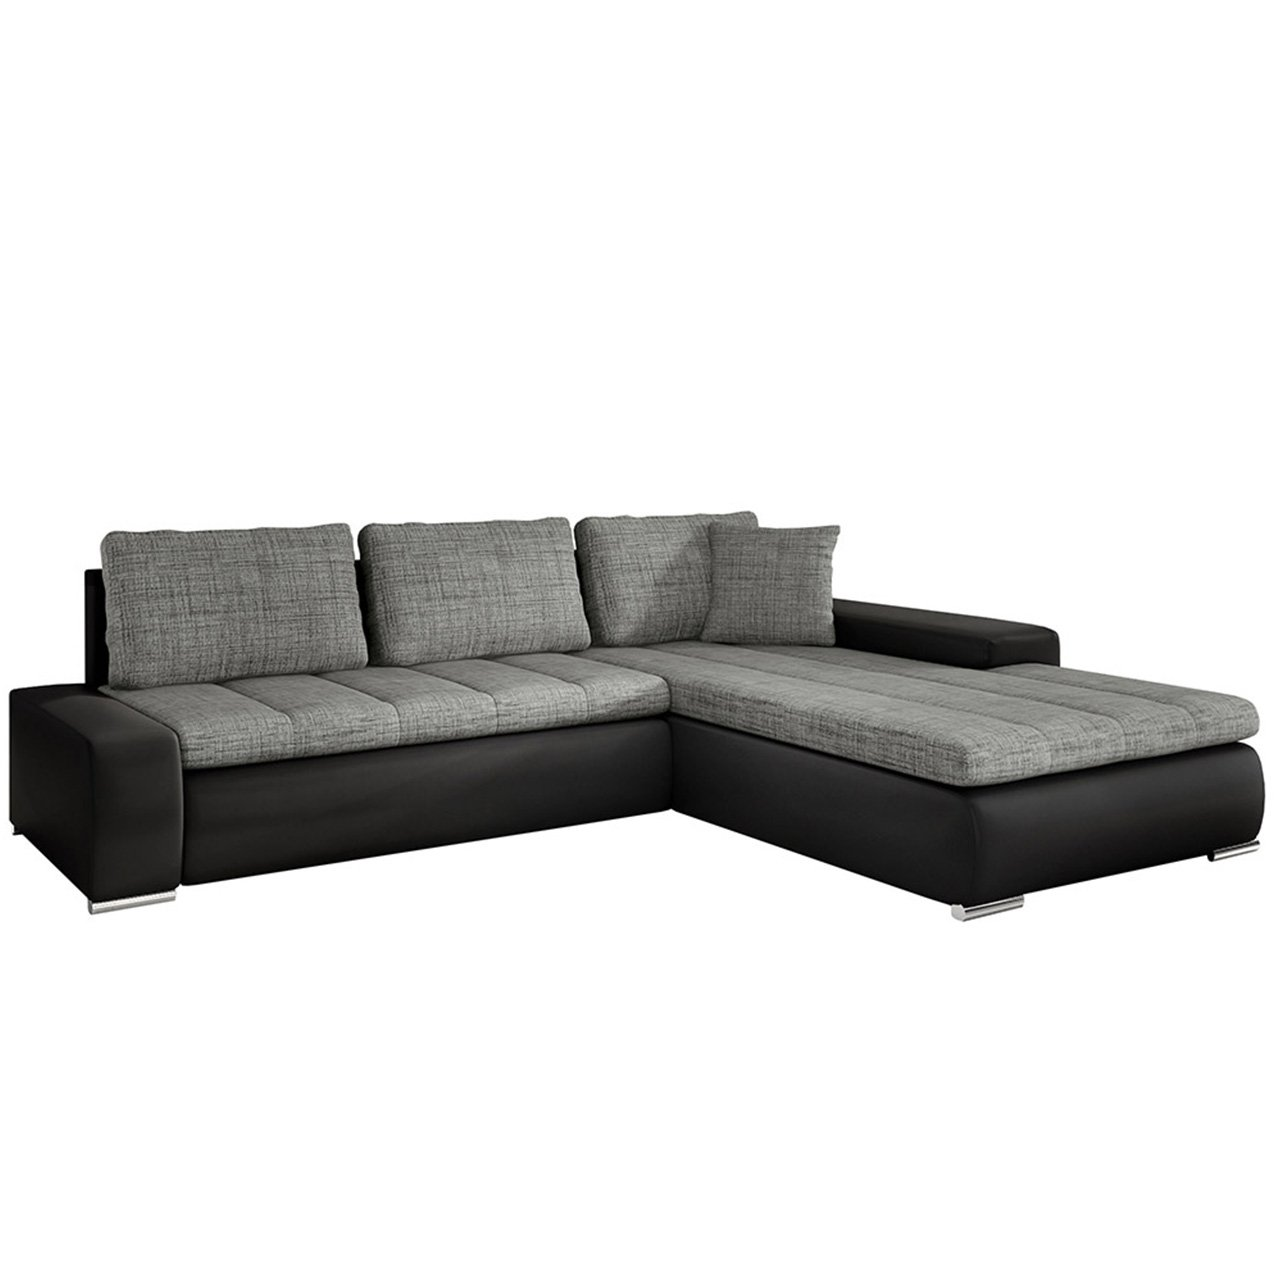 eckcouch ecksofa orkan loft elegante sofa mit schlaffunktion und bettfunktion bettkasten. Black Bedroom Furniture Sets. Home Design Ideas